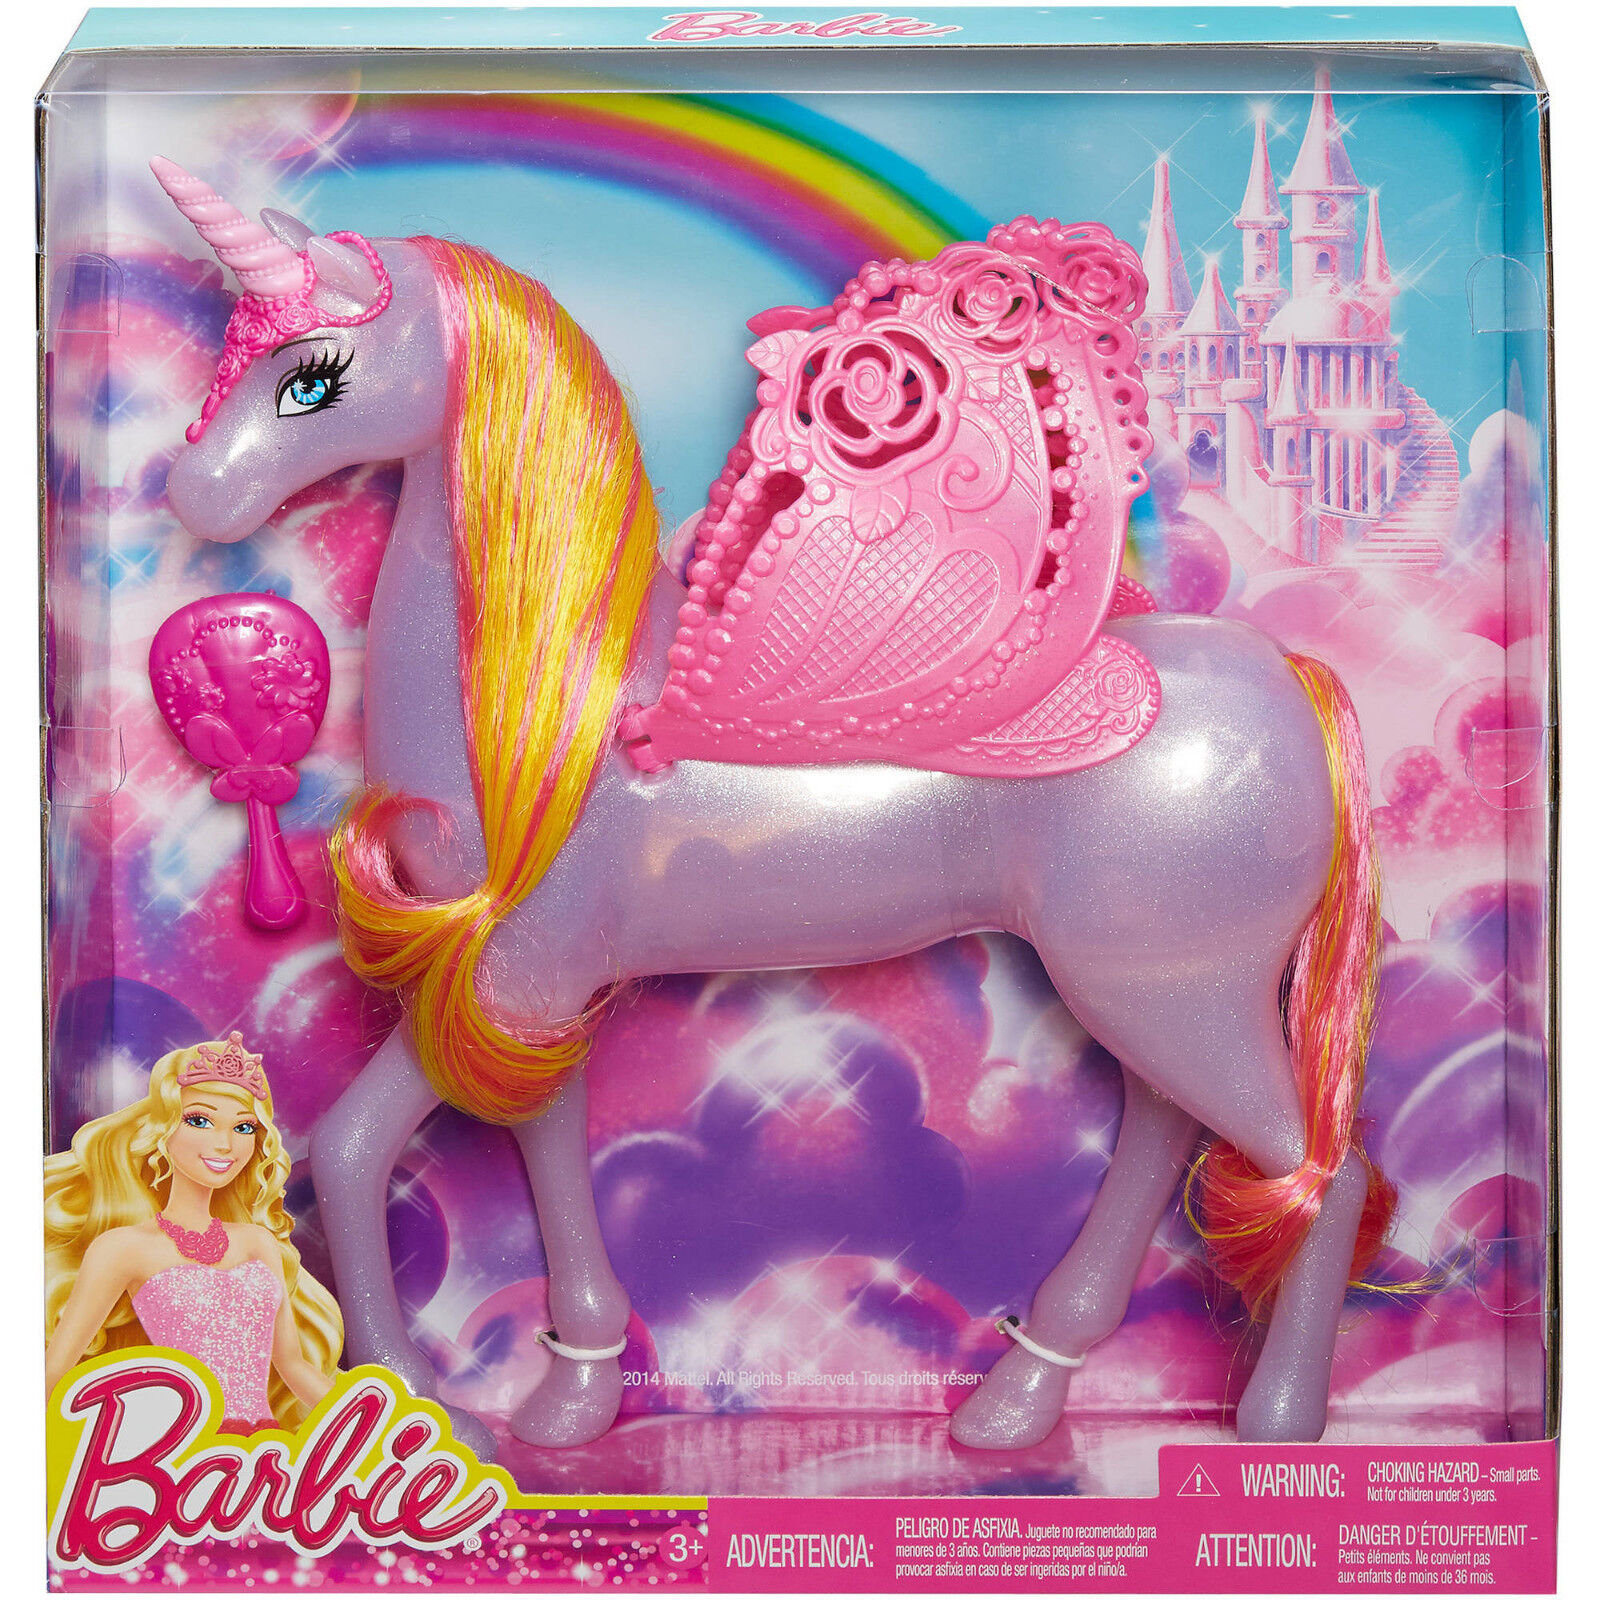 Barbie Fairytale Rosa Pegasus Unicorn